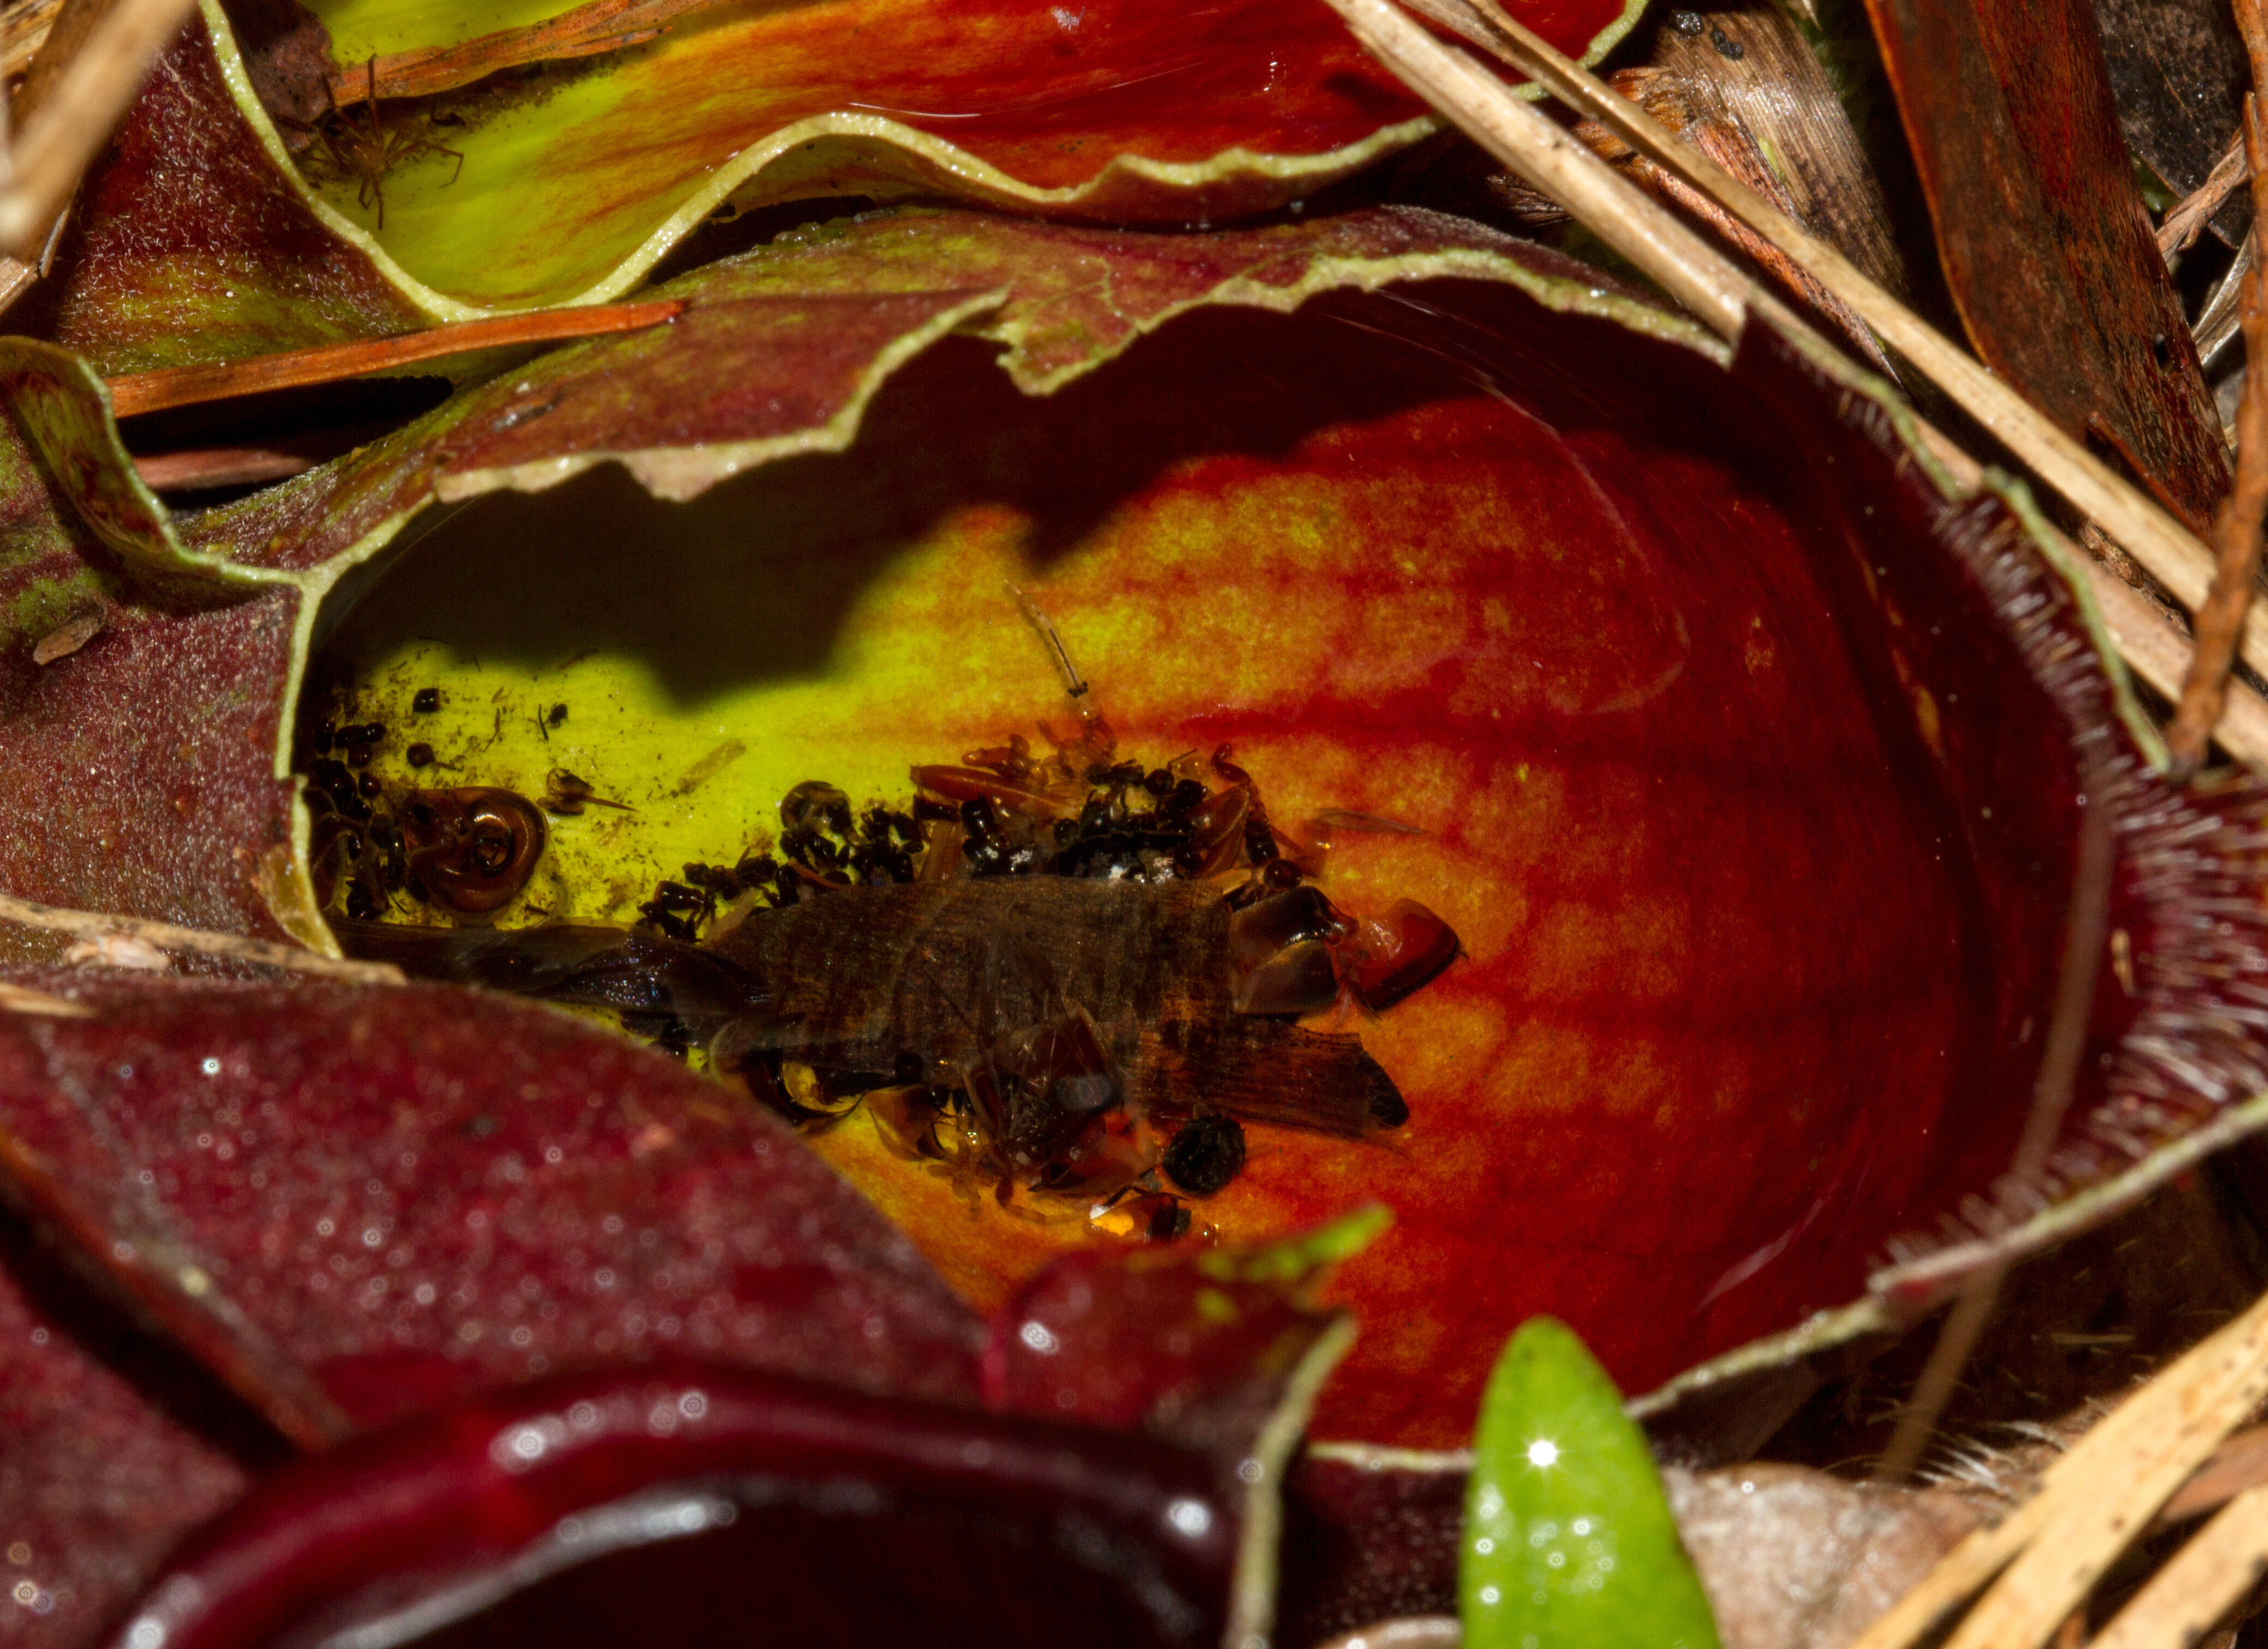 Purple pitcher plant leaves filled with water